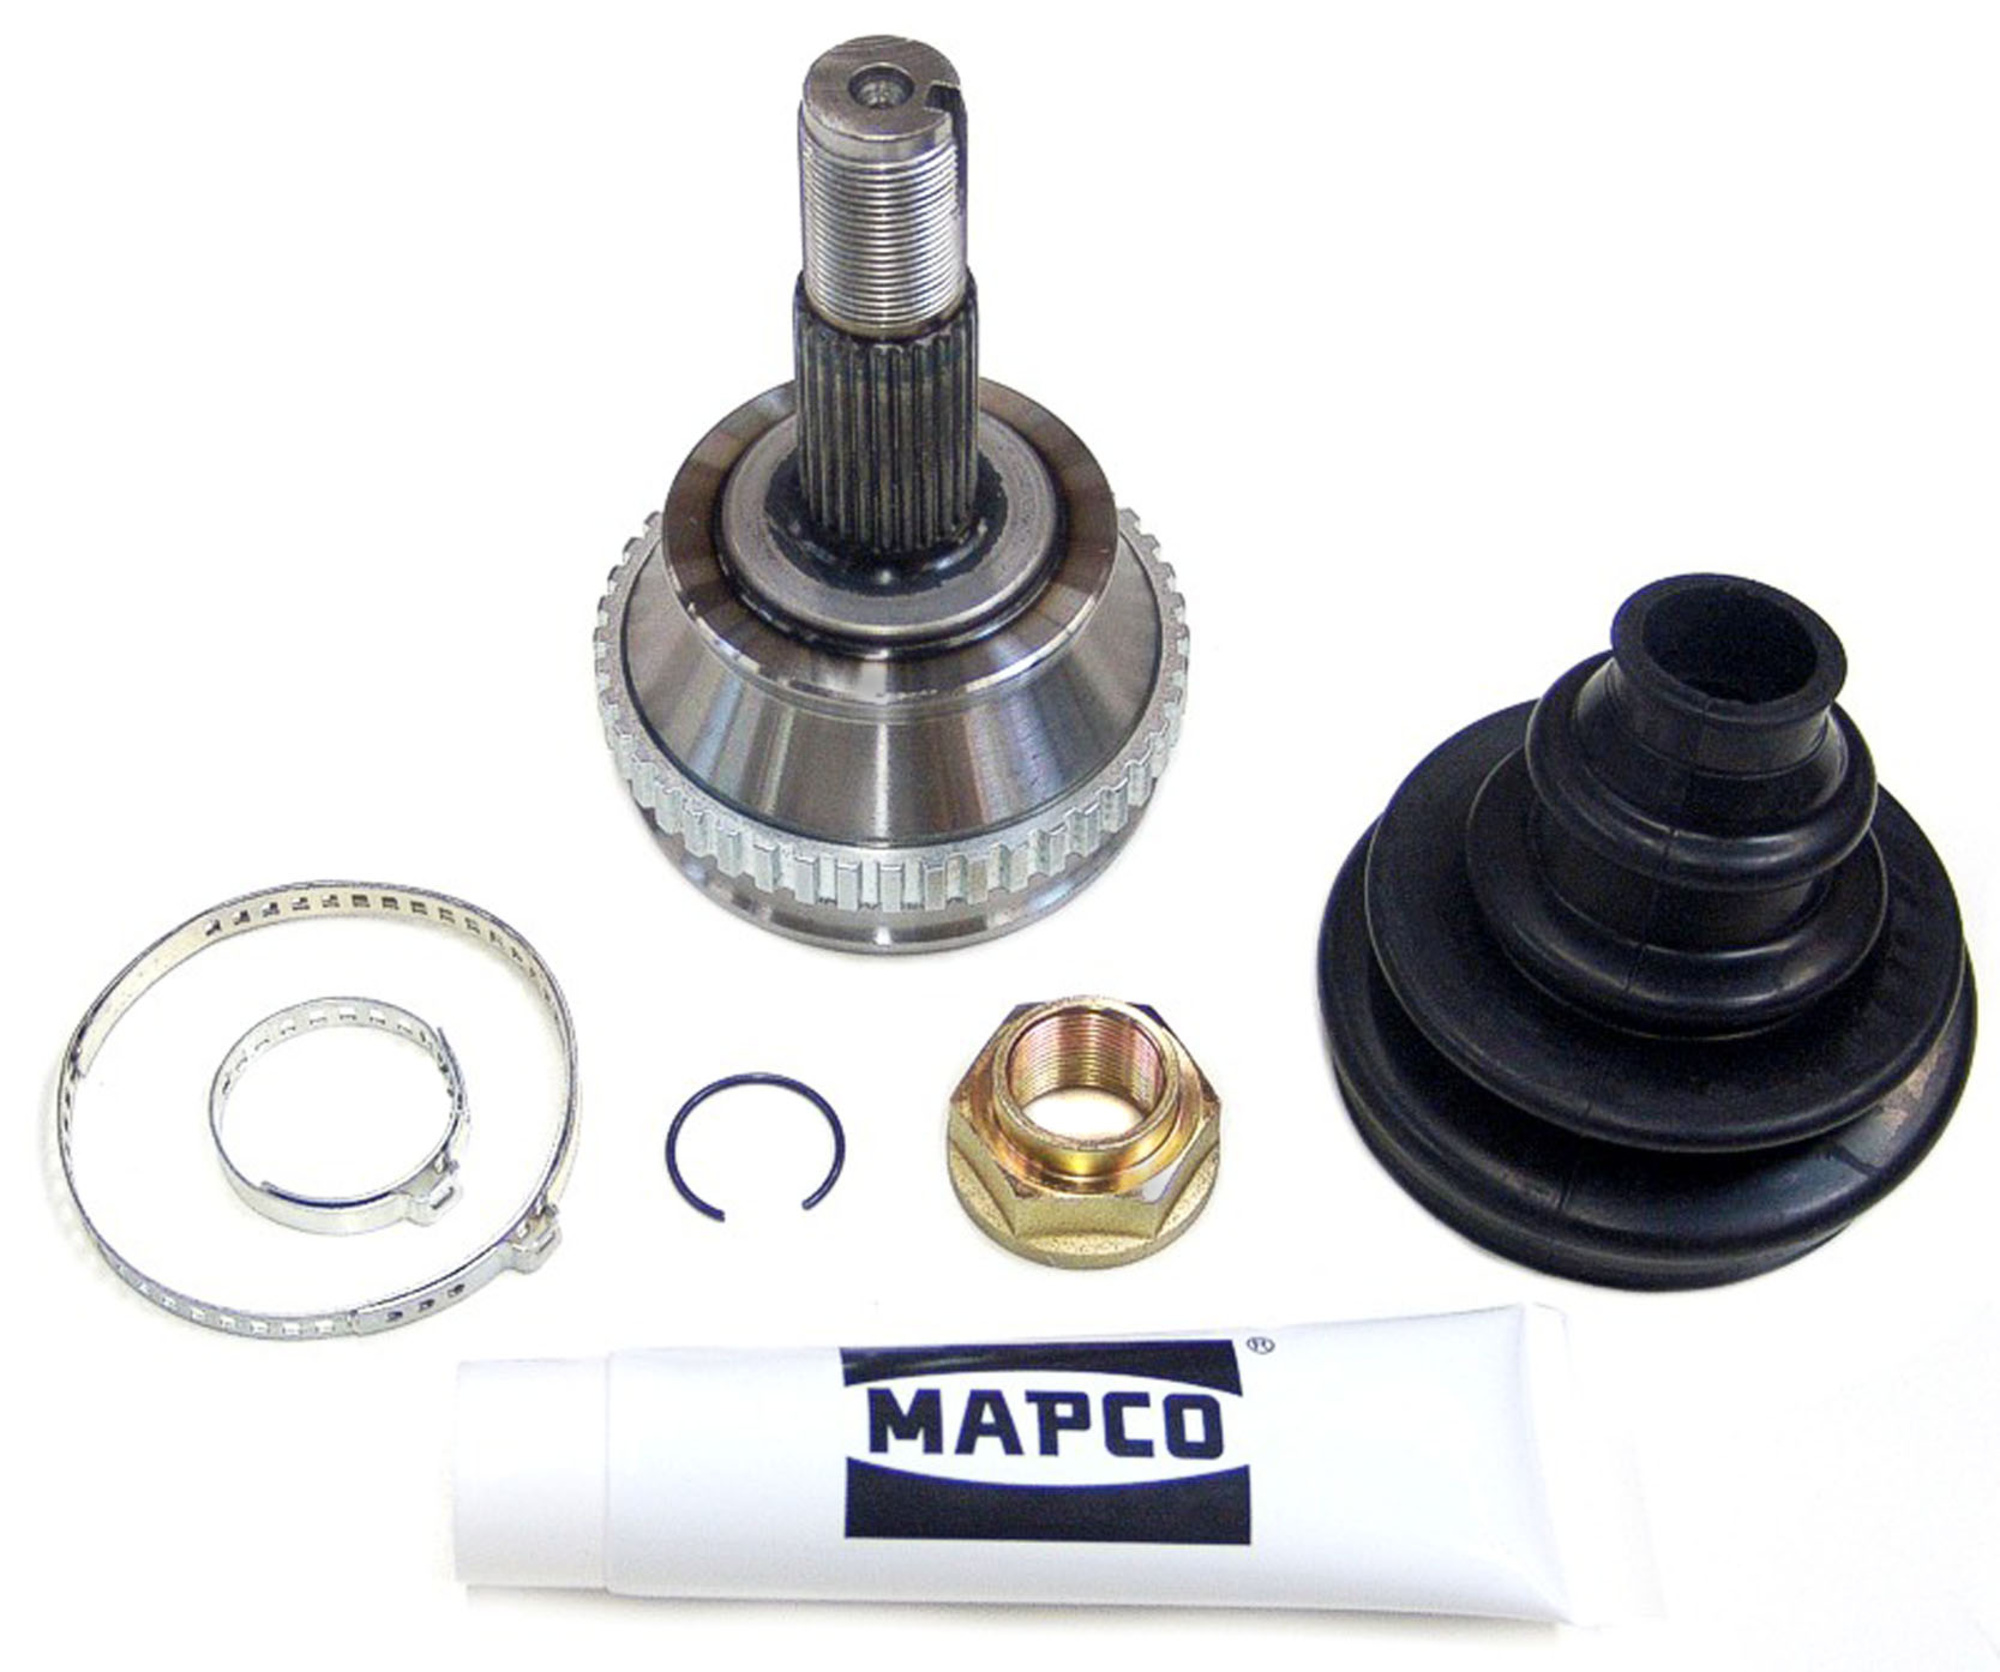 ALFA ROMEO 155 2.0 TWIN SPARK INNER CV JOINT /& CV BOOT KIT 1993/>1995